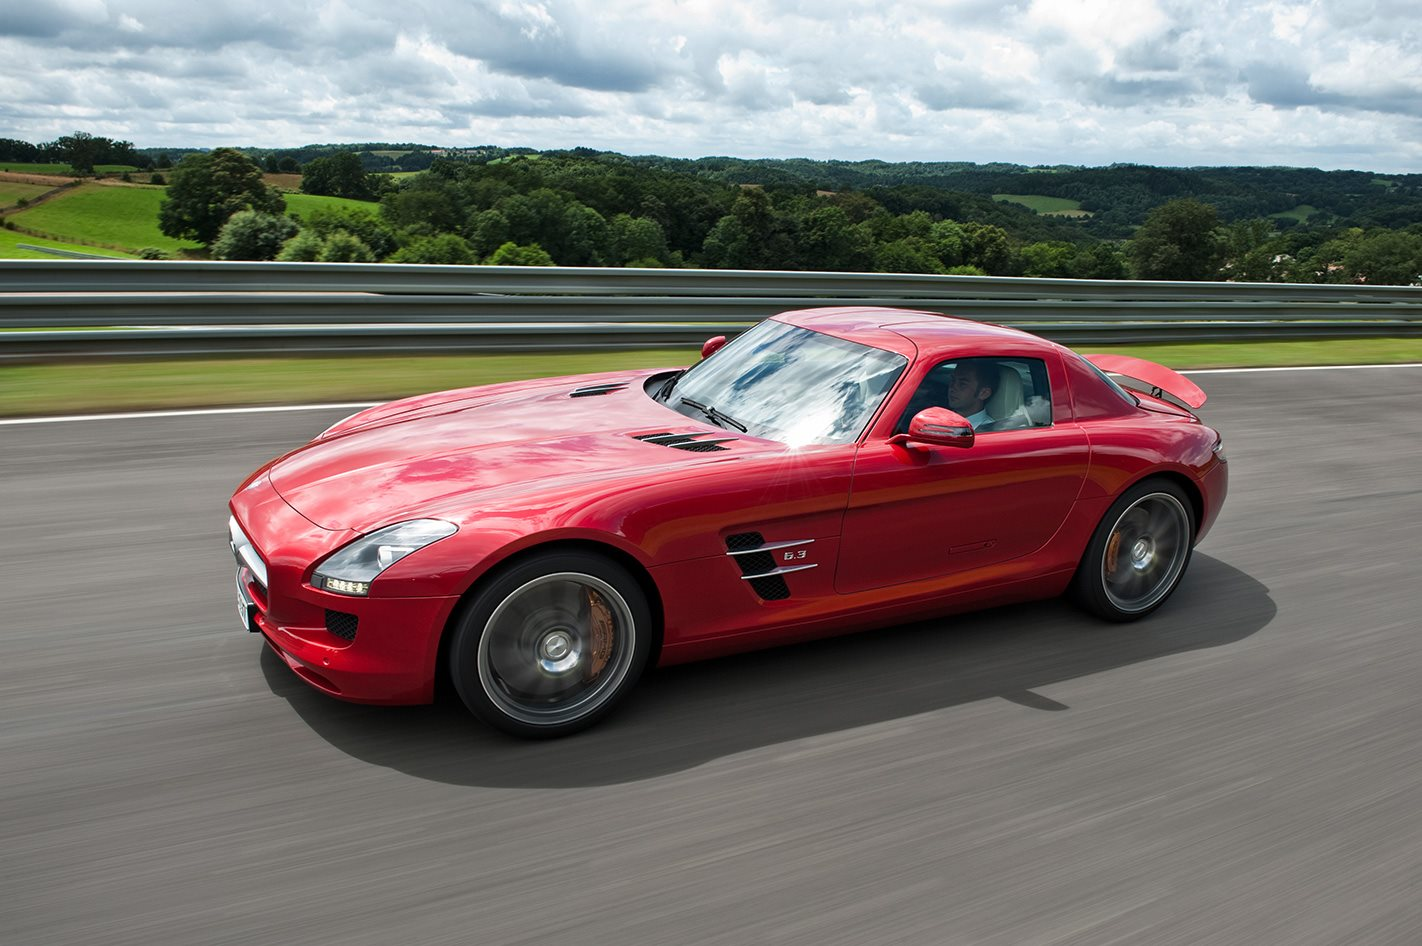 Mercedes-Benz SLS AMG on the road